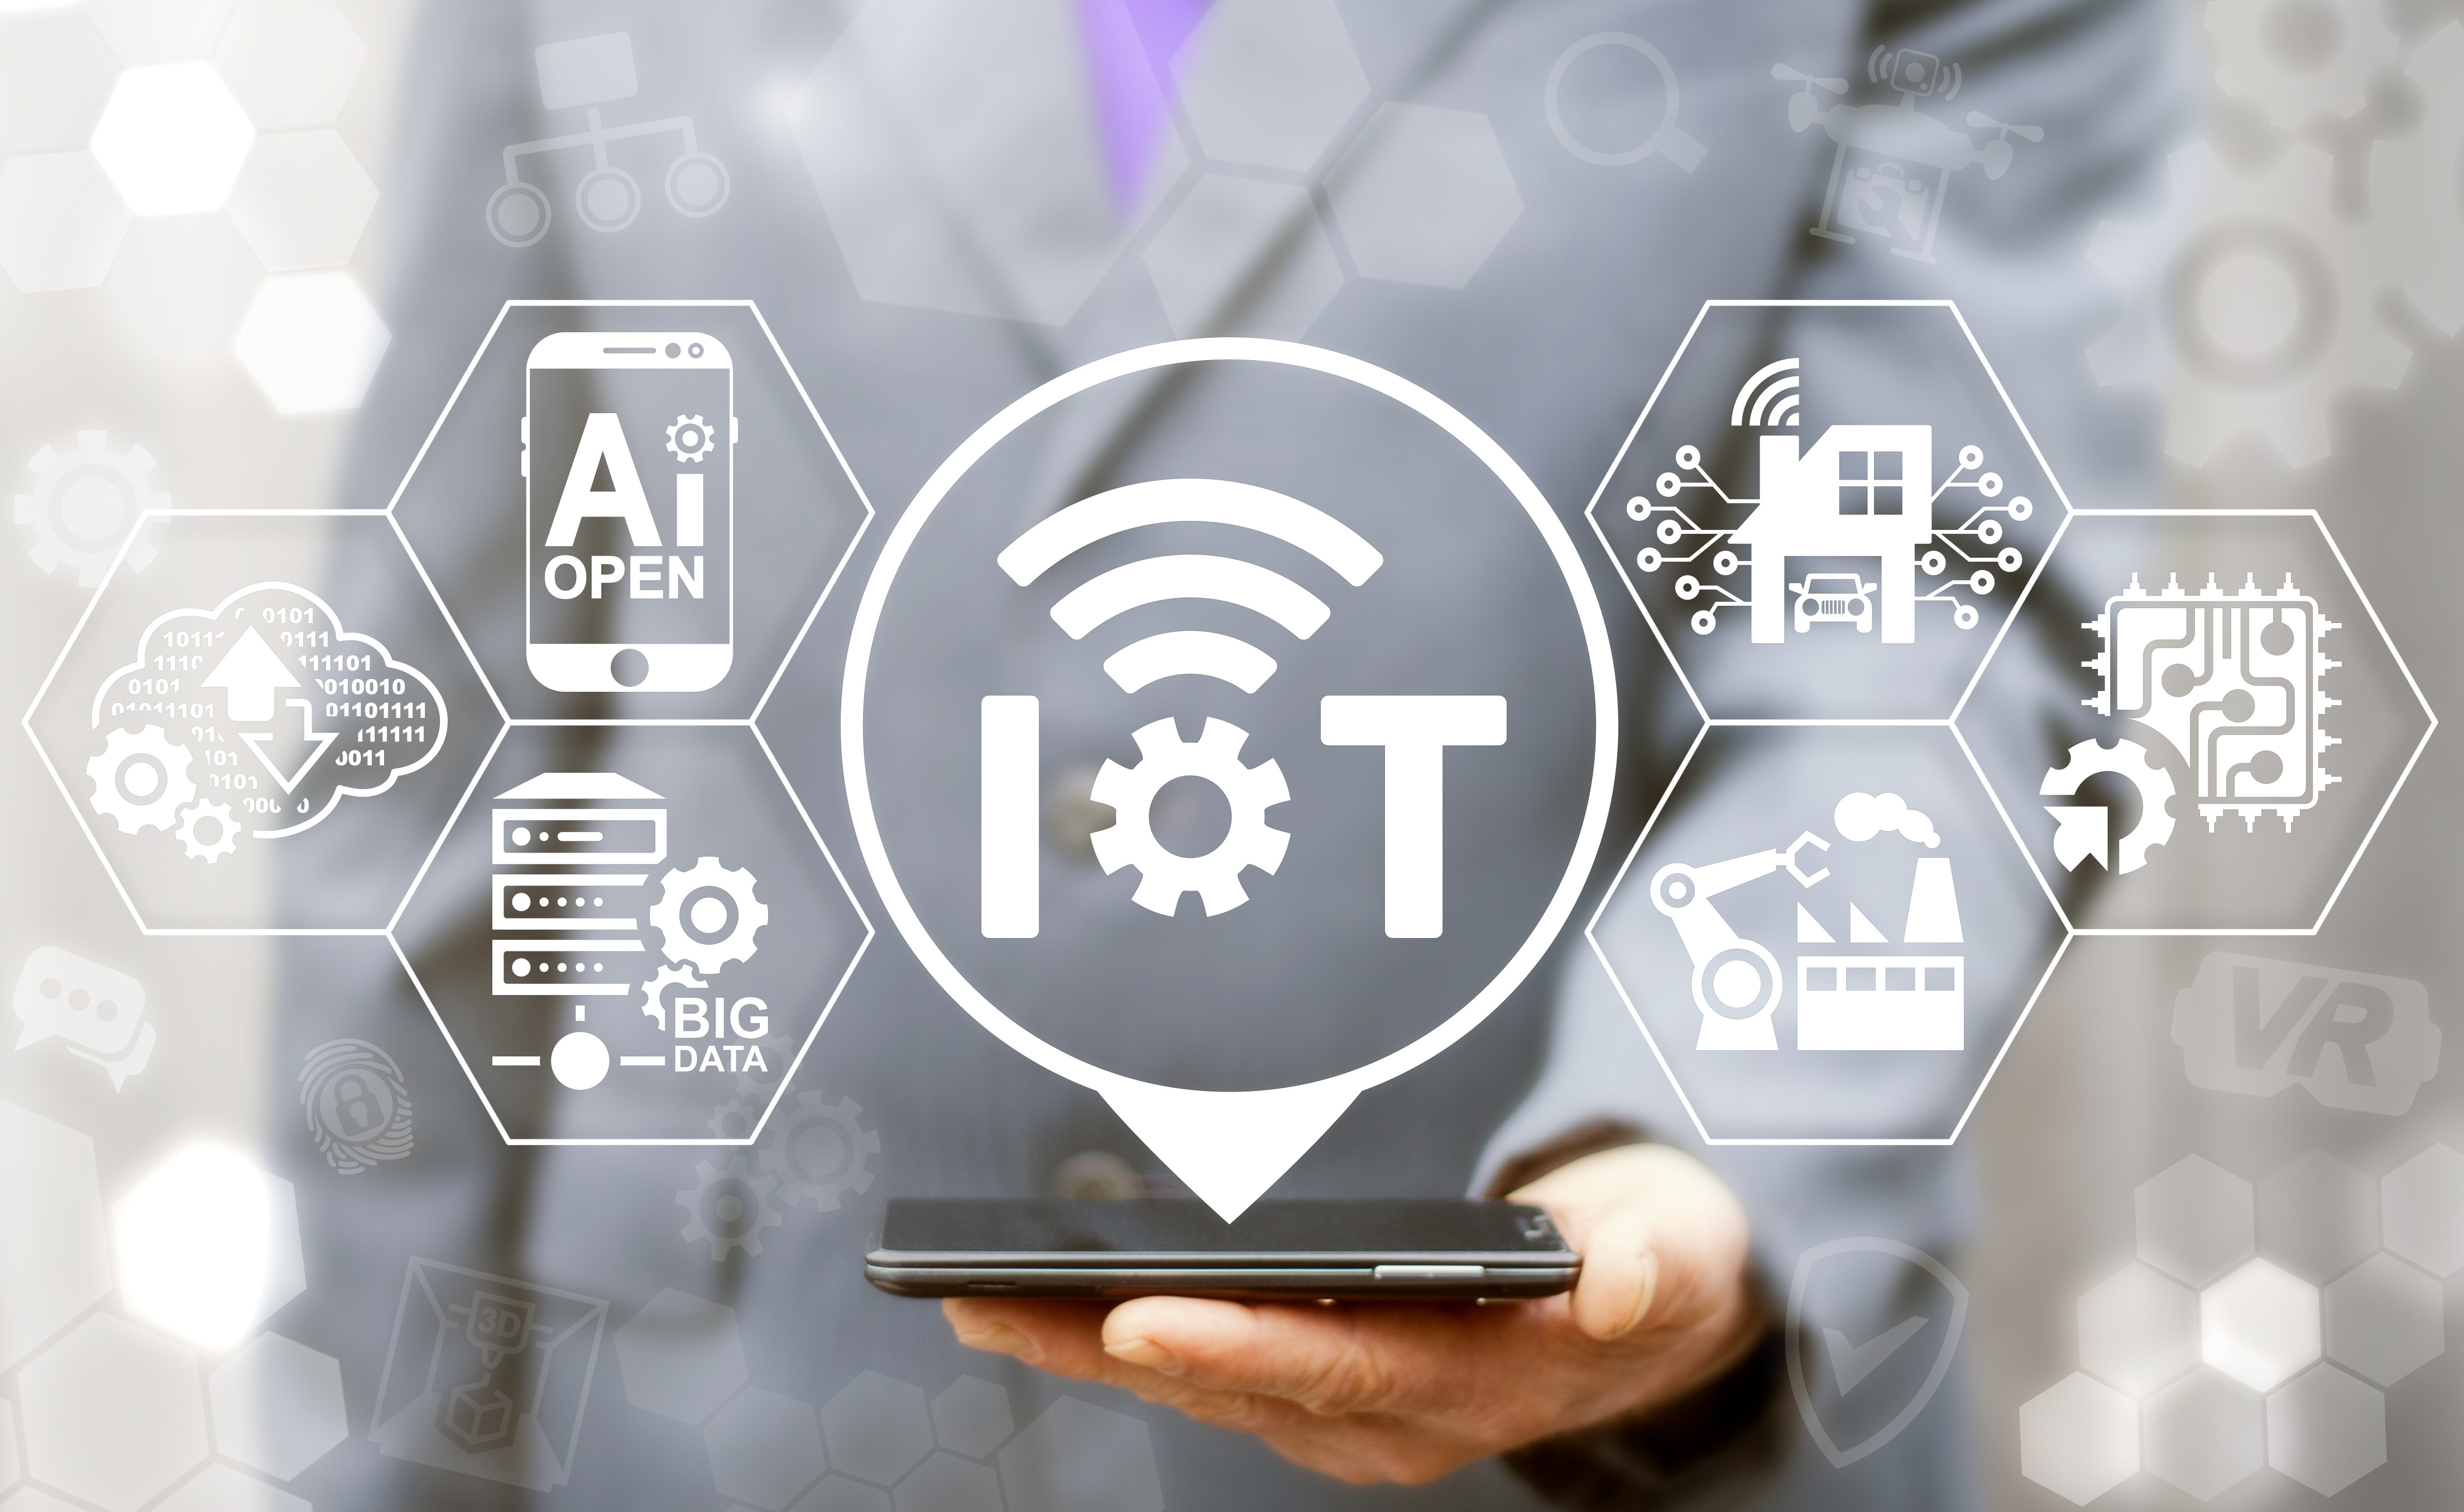 How Brick and Mortar Businesses Can Get The Most Out of The Internet of Things (IOT)